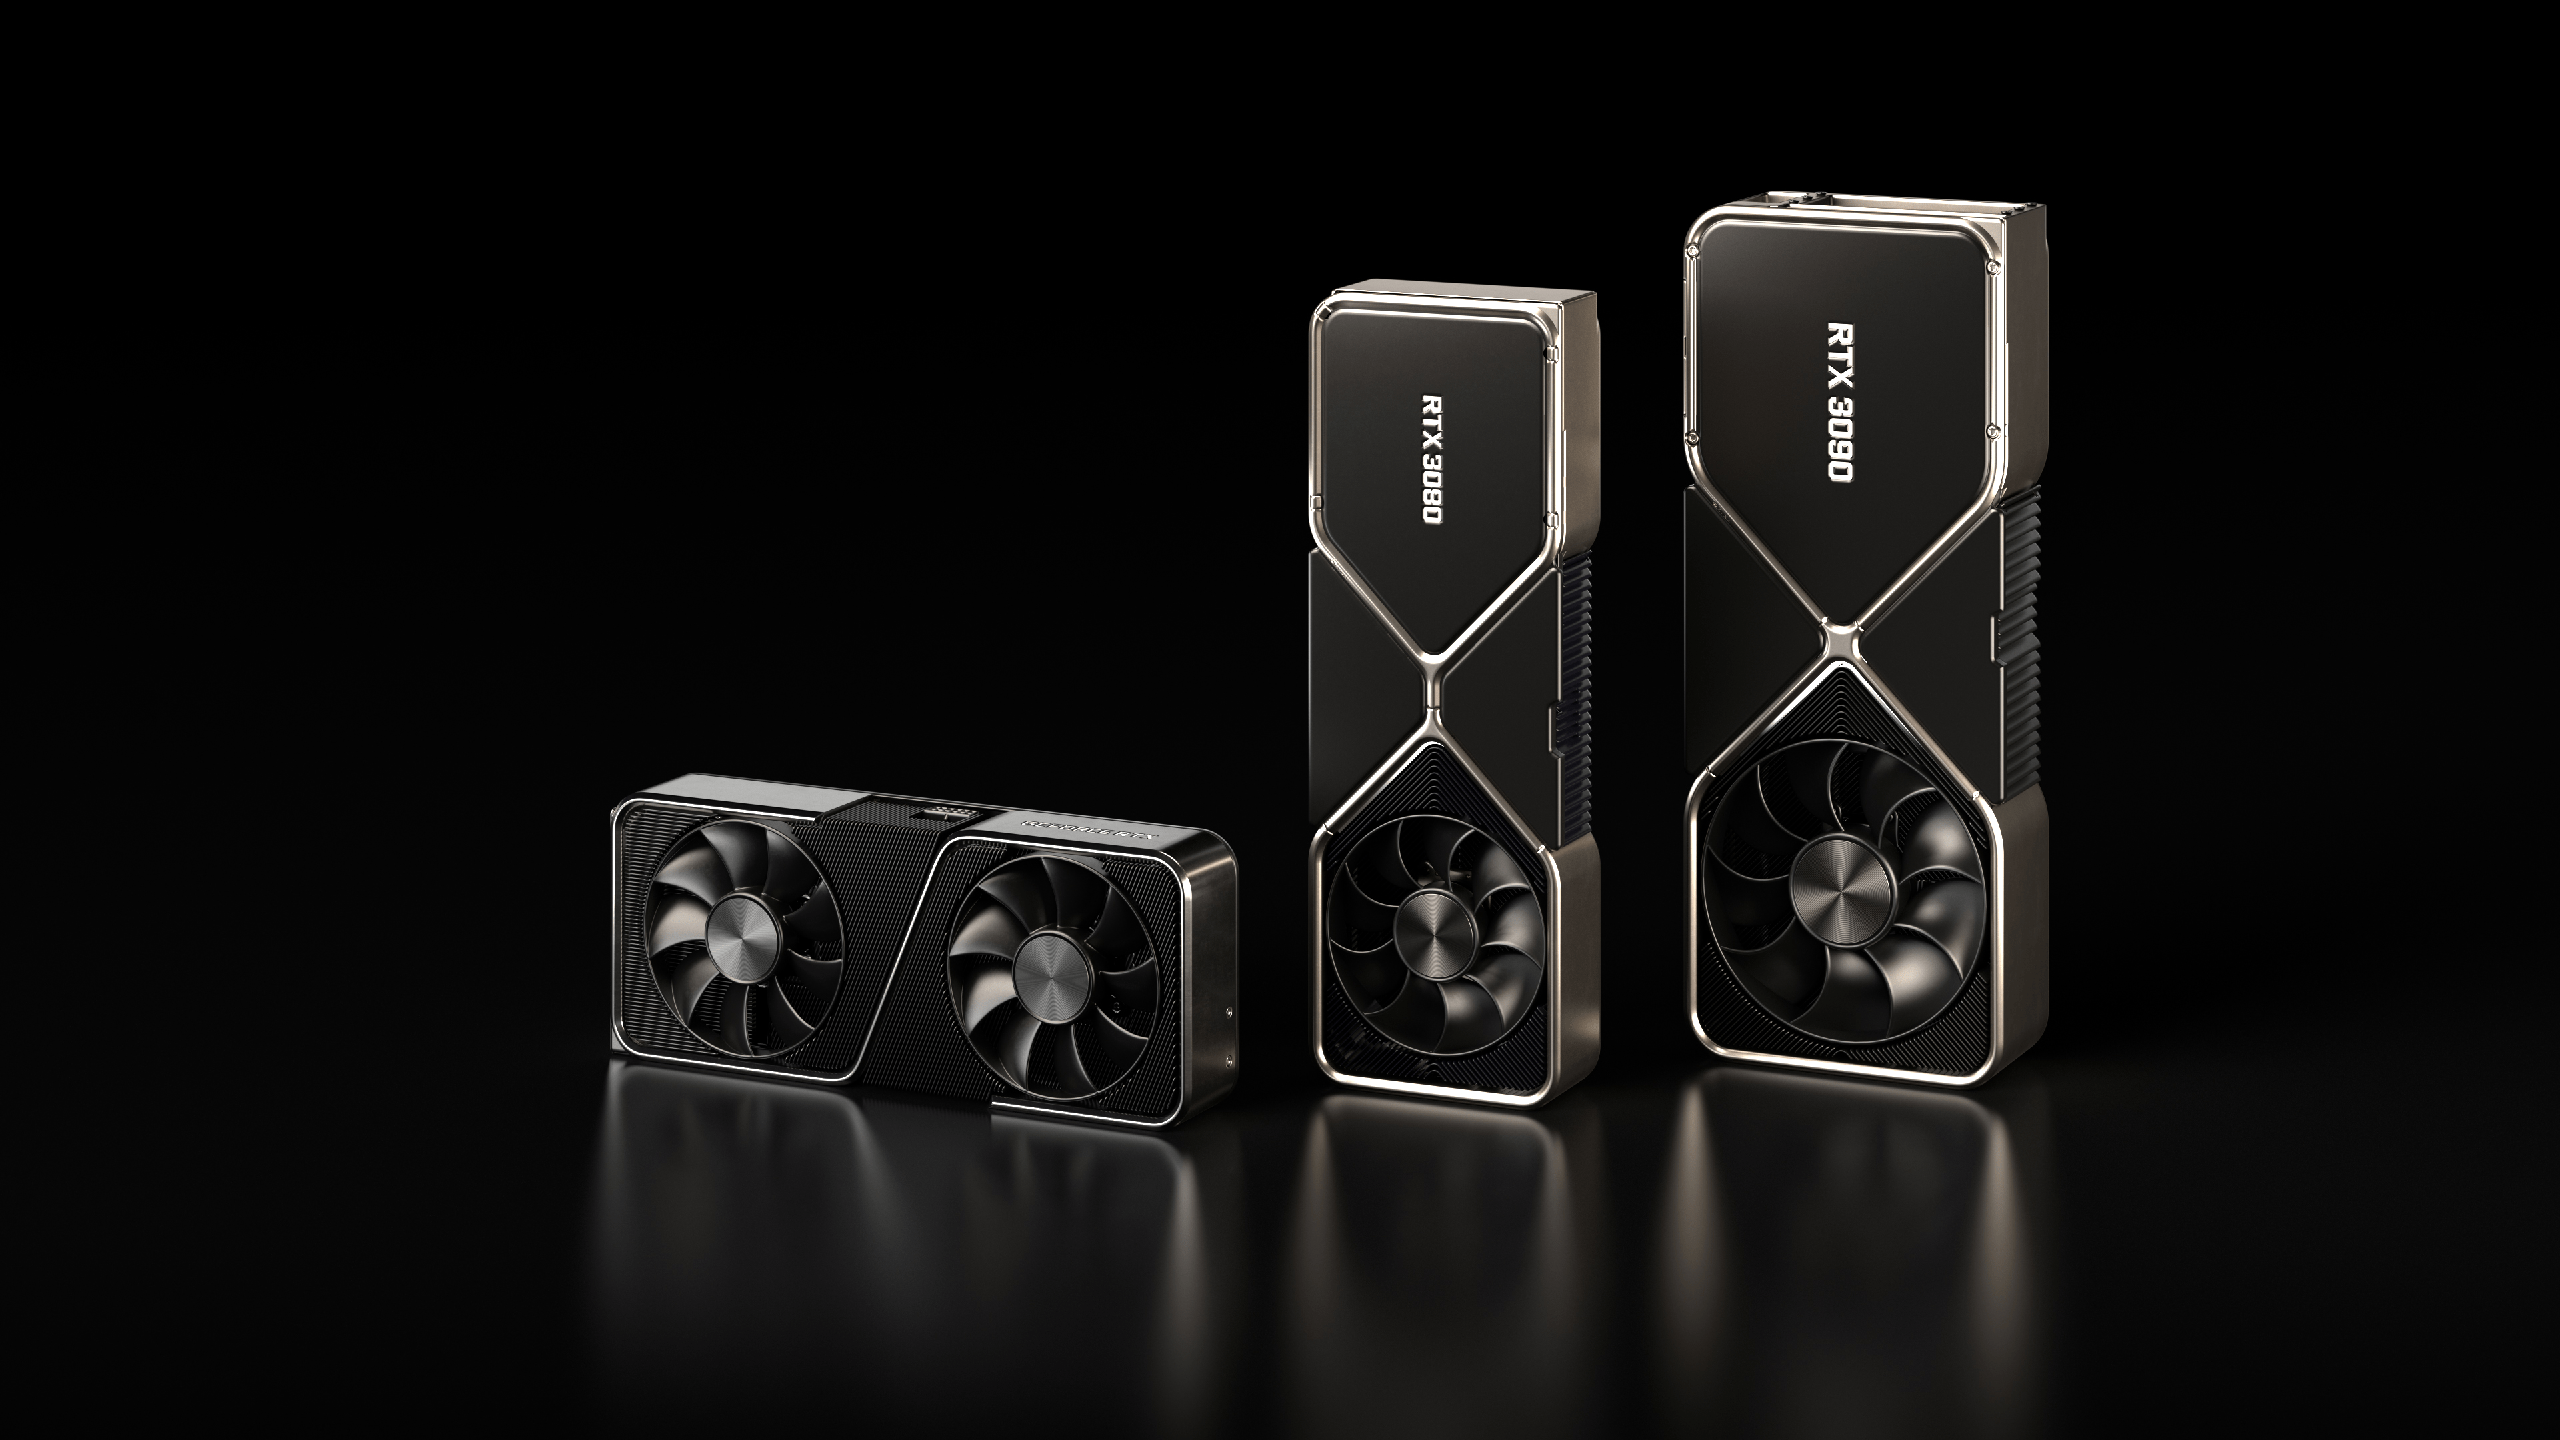 Nvidia believes shortage of graphics cards will continue in 2022